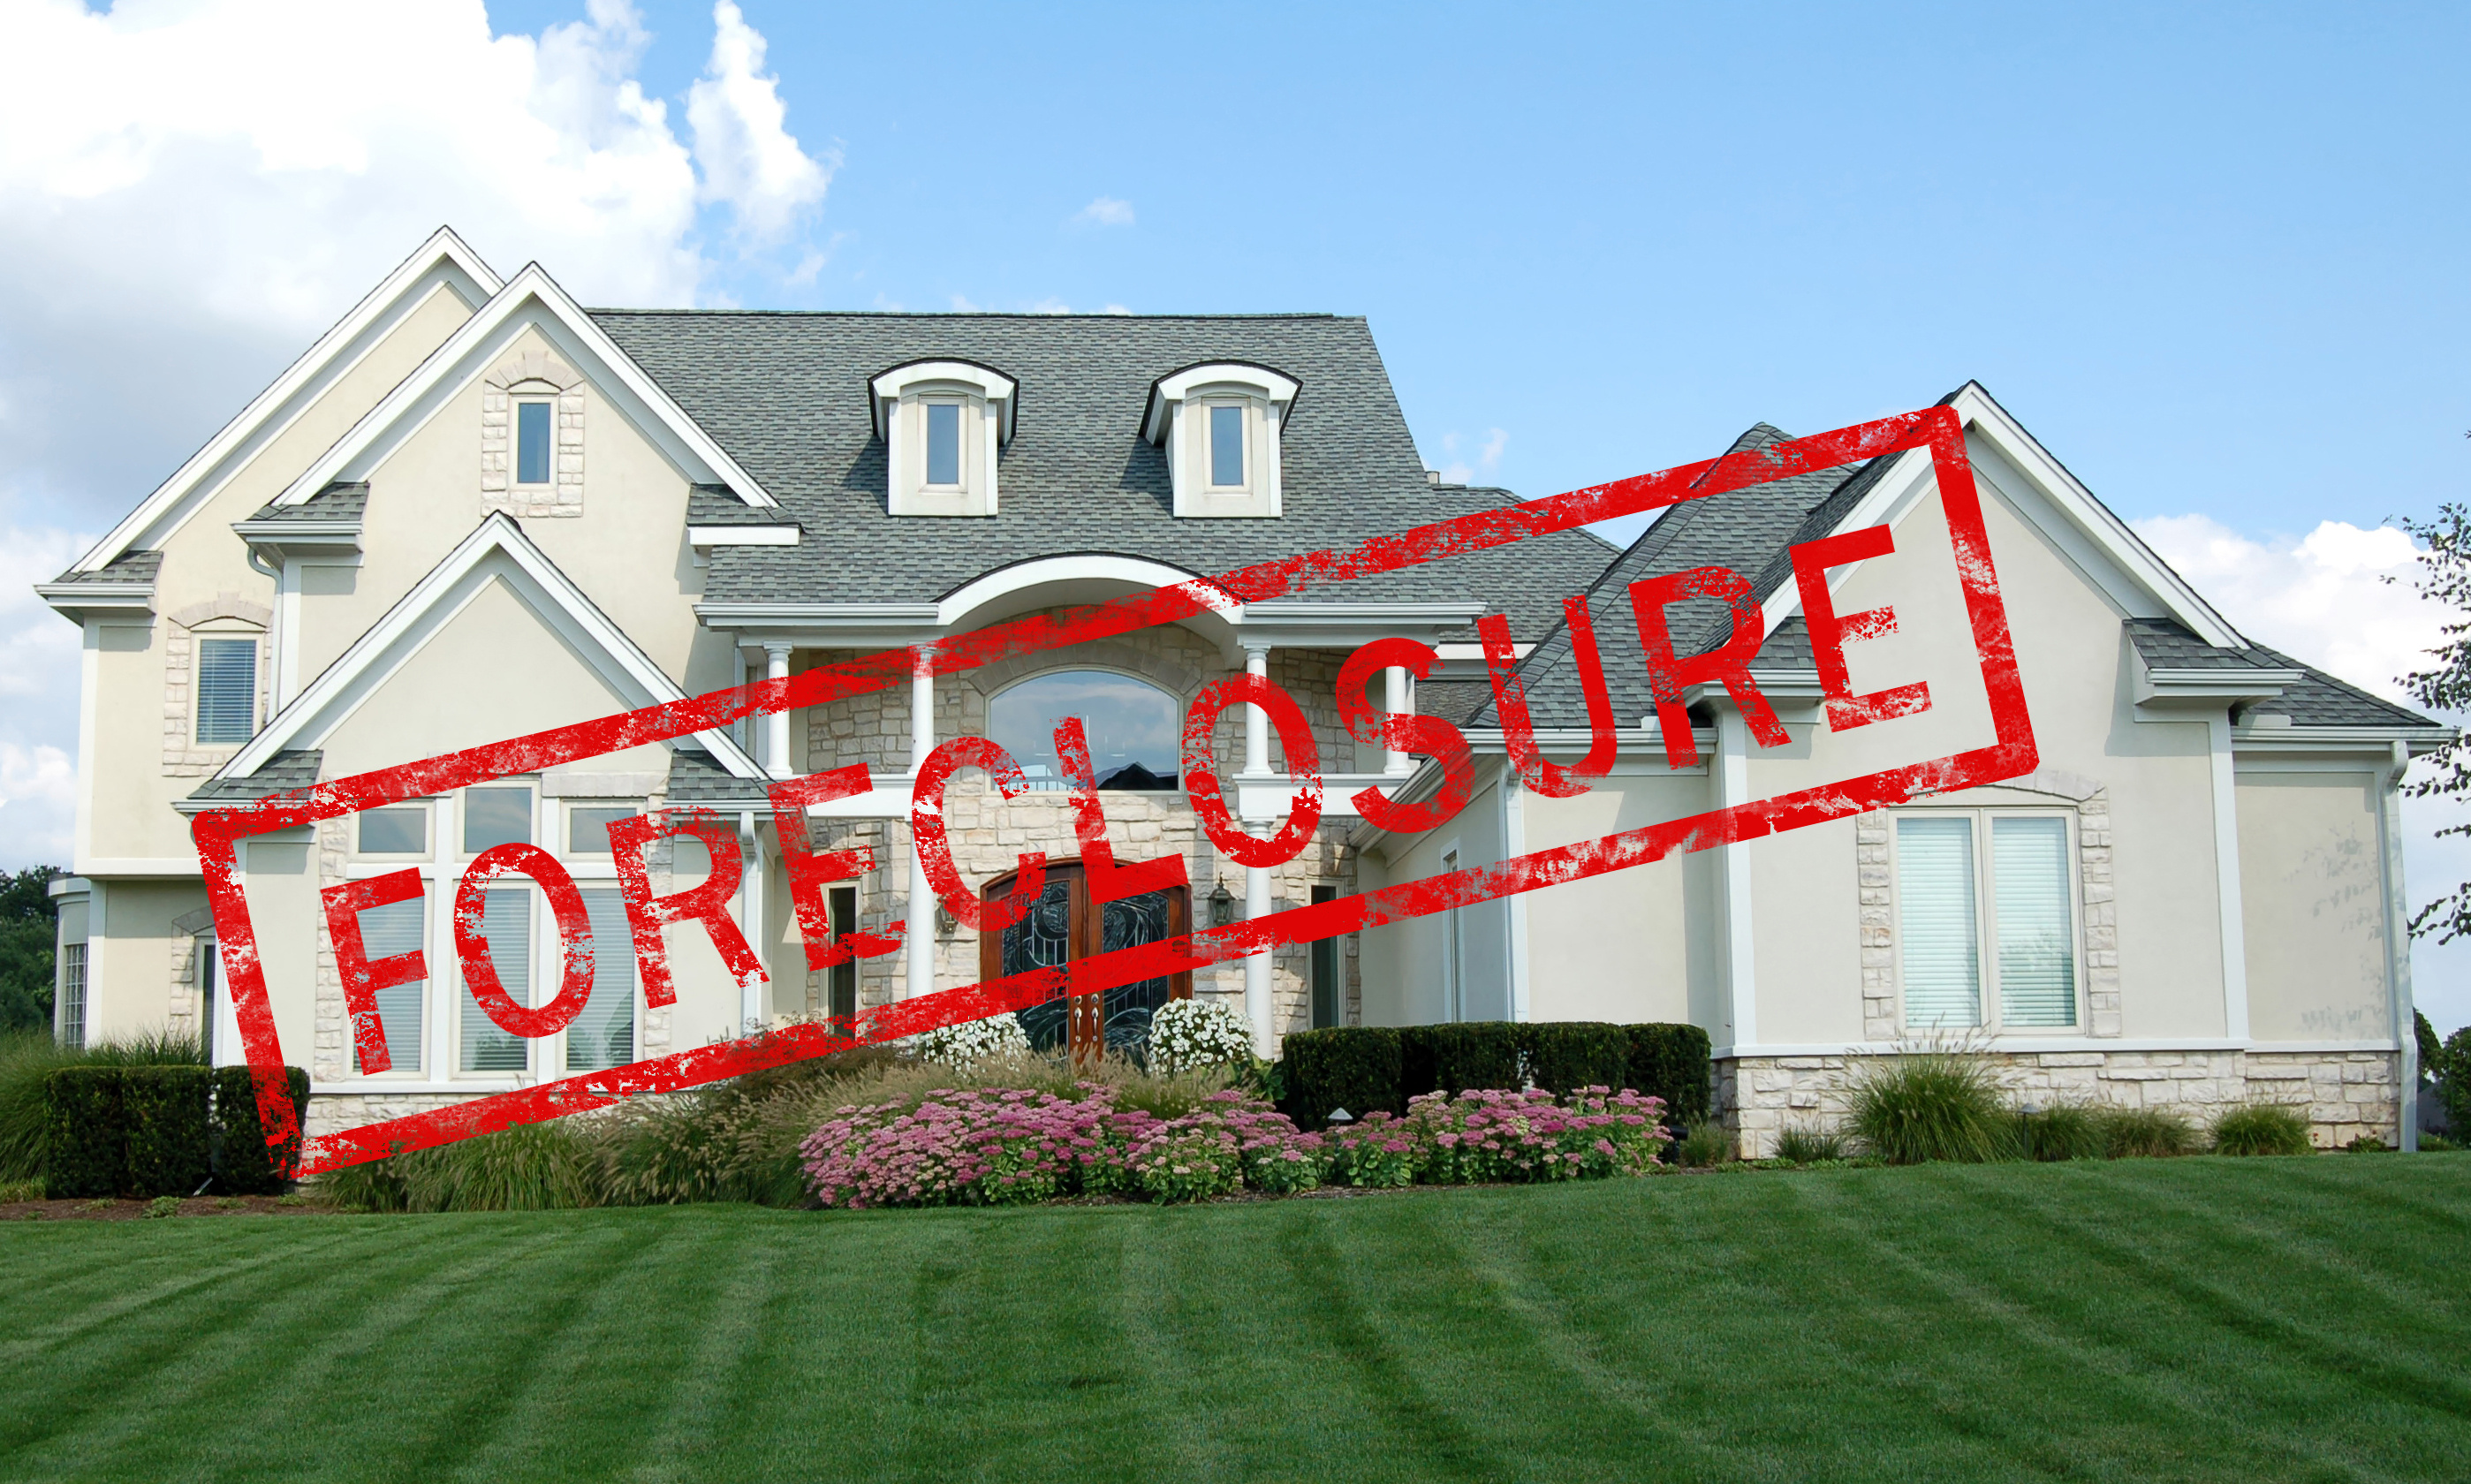 Call Elite Appraisal Services when you need valuations regarding Brazoria foreclosures